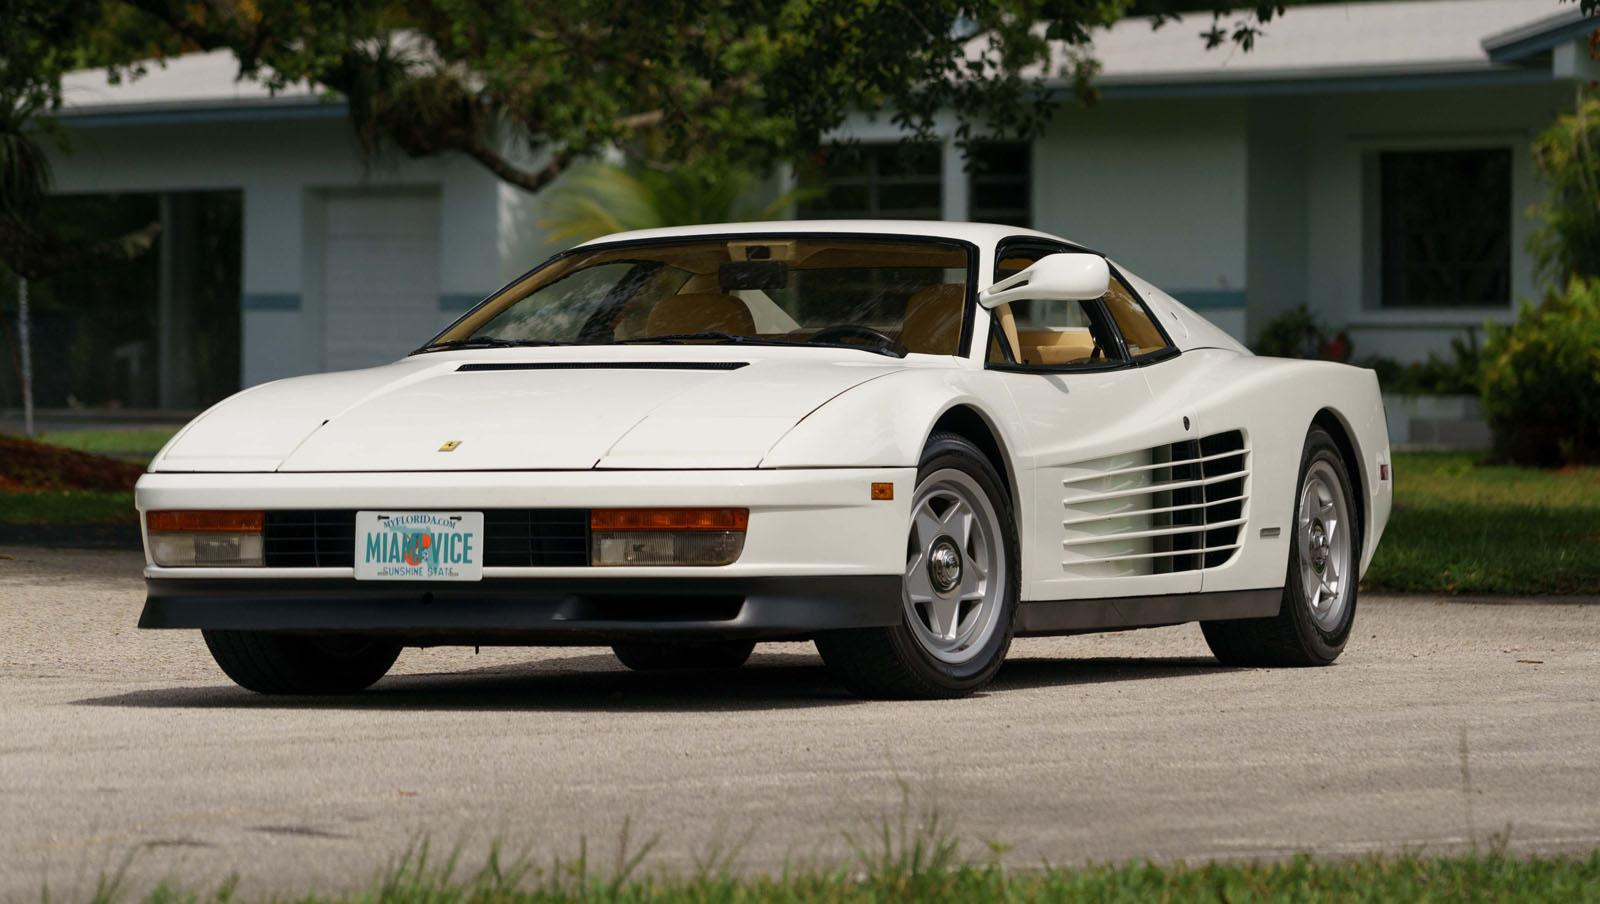 Miami Vice Testarossa Up For Auction, We Dream Longingly